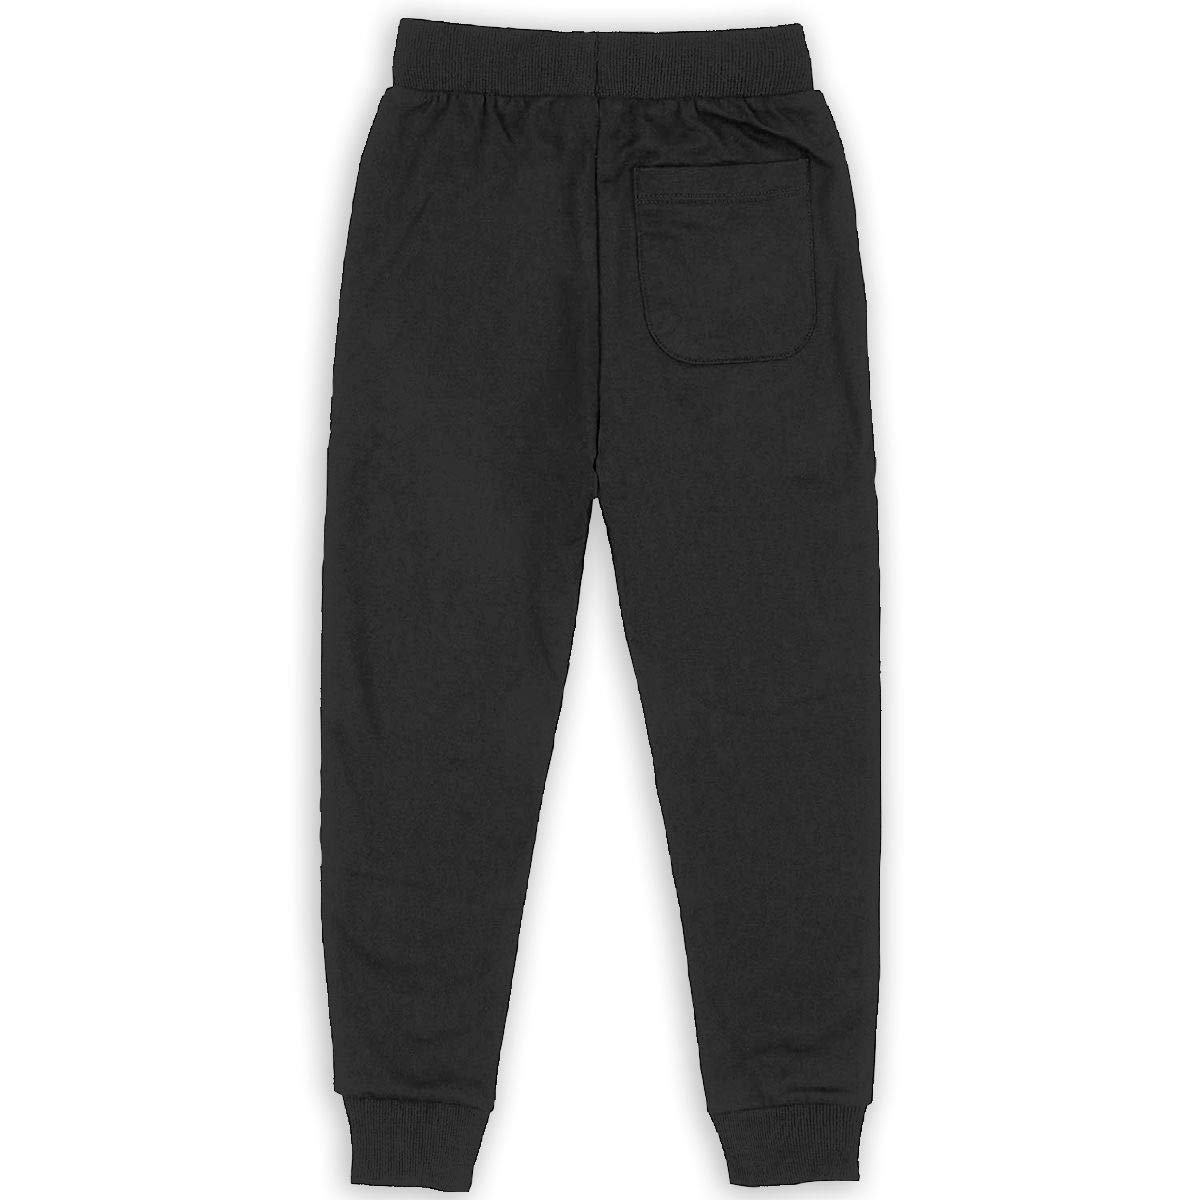 IufnNRJndfu Figure Skating Boys Athletic Smart Fleece Pant Youth Soft and Cozy Sweatpants